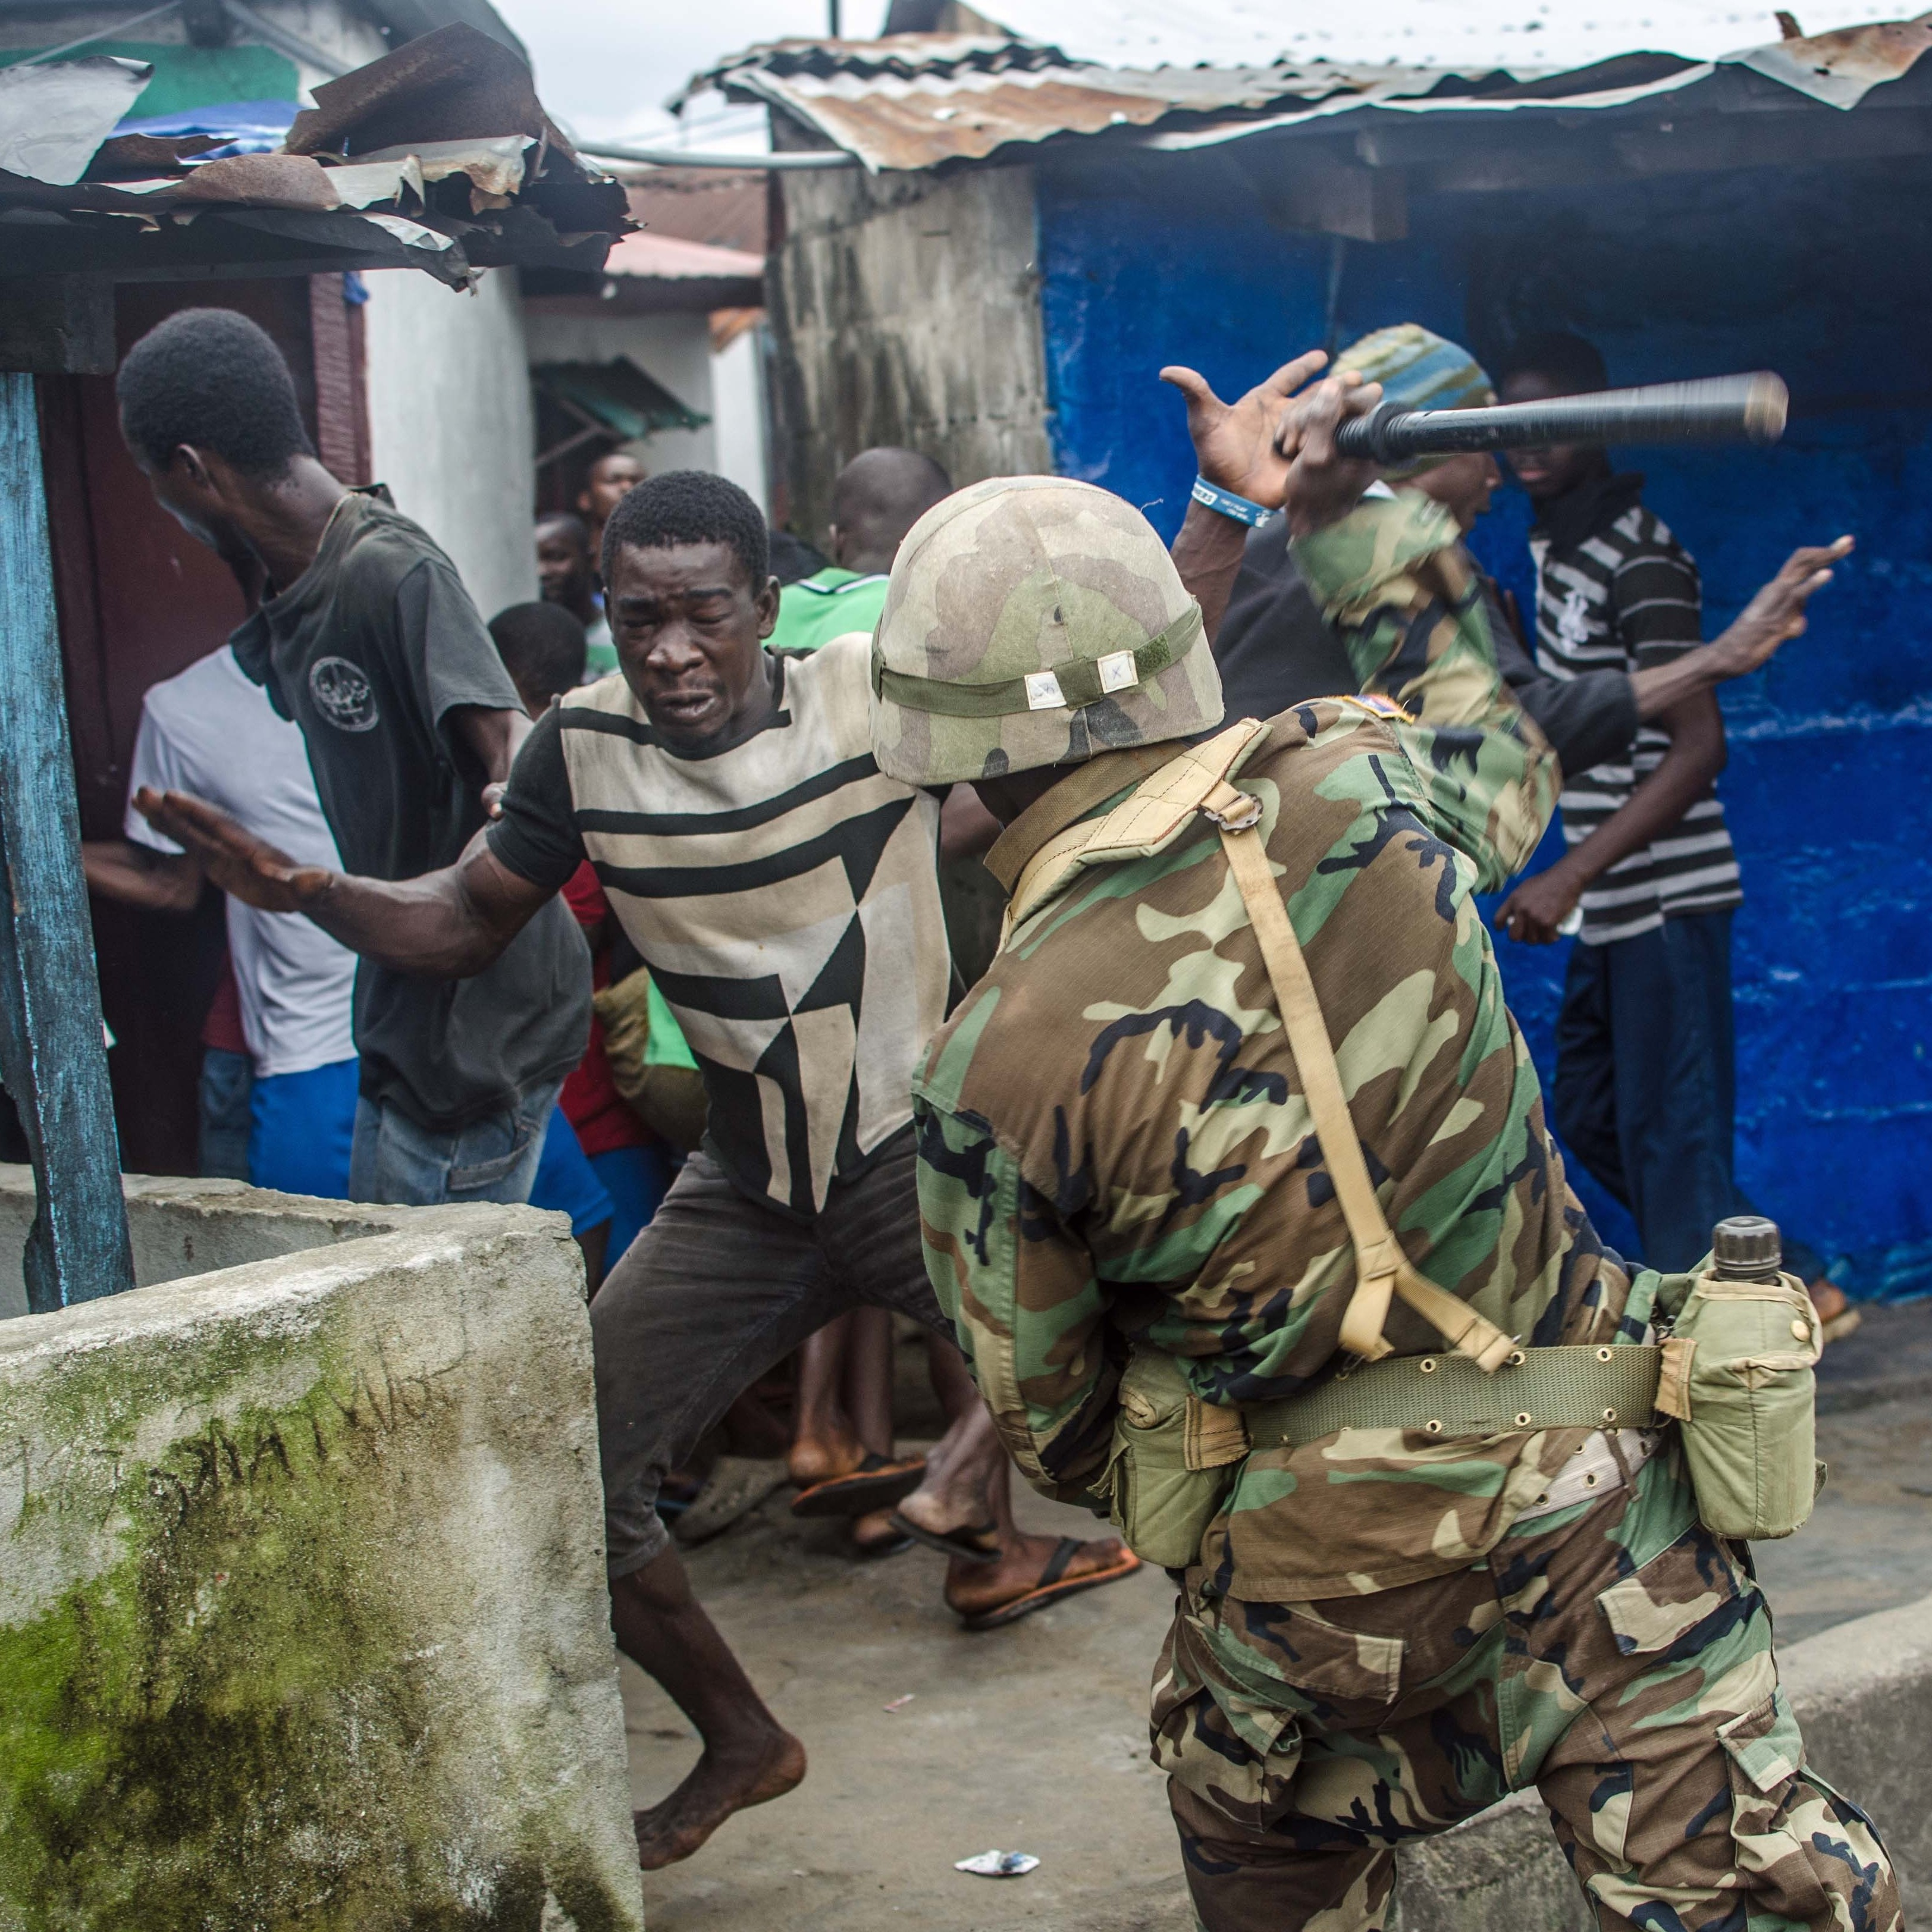 A soldier hits a protester with a baton.